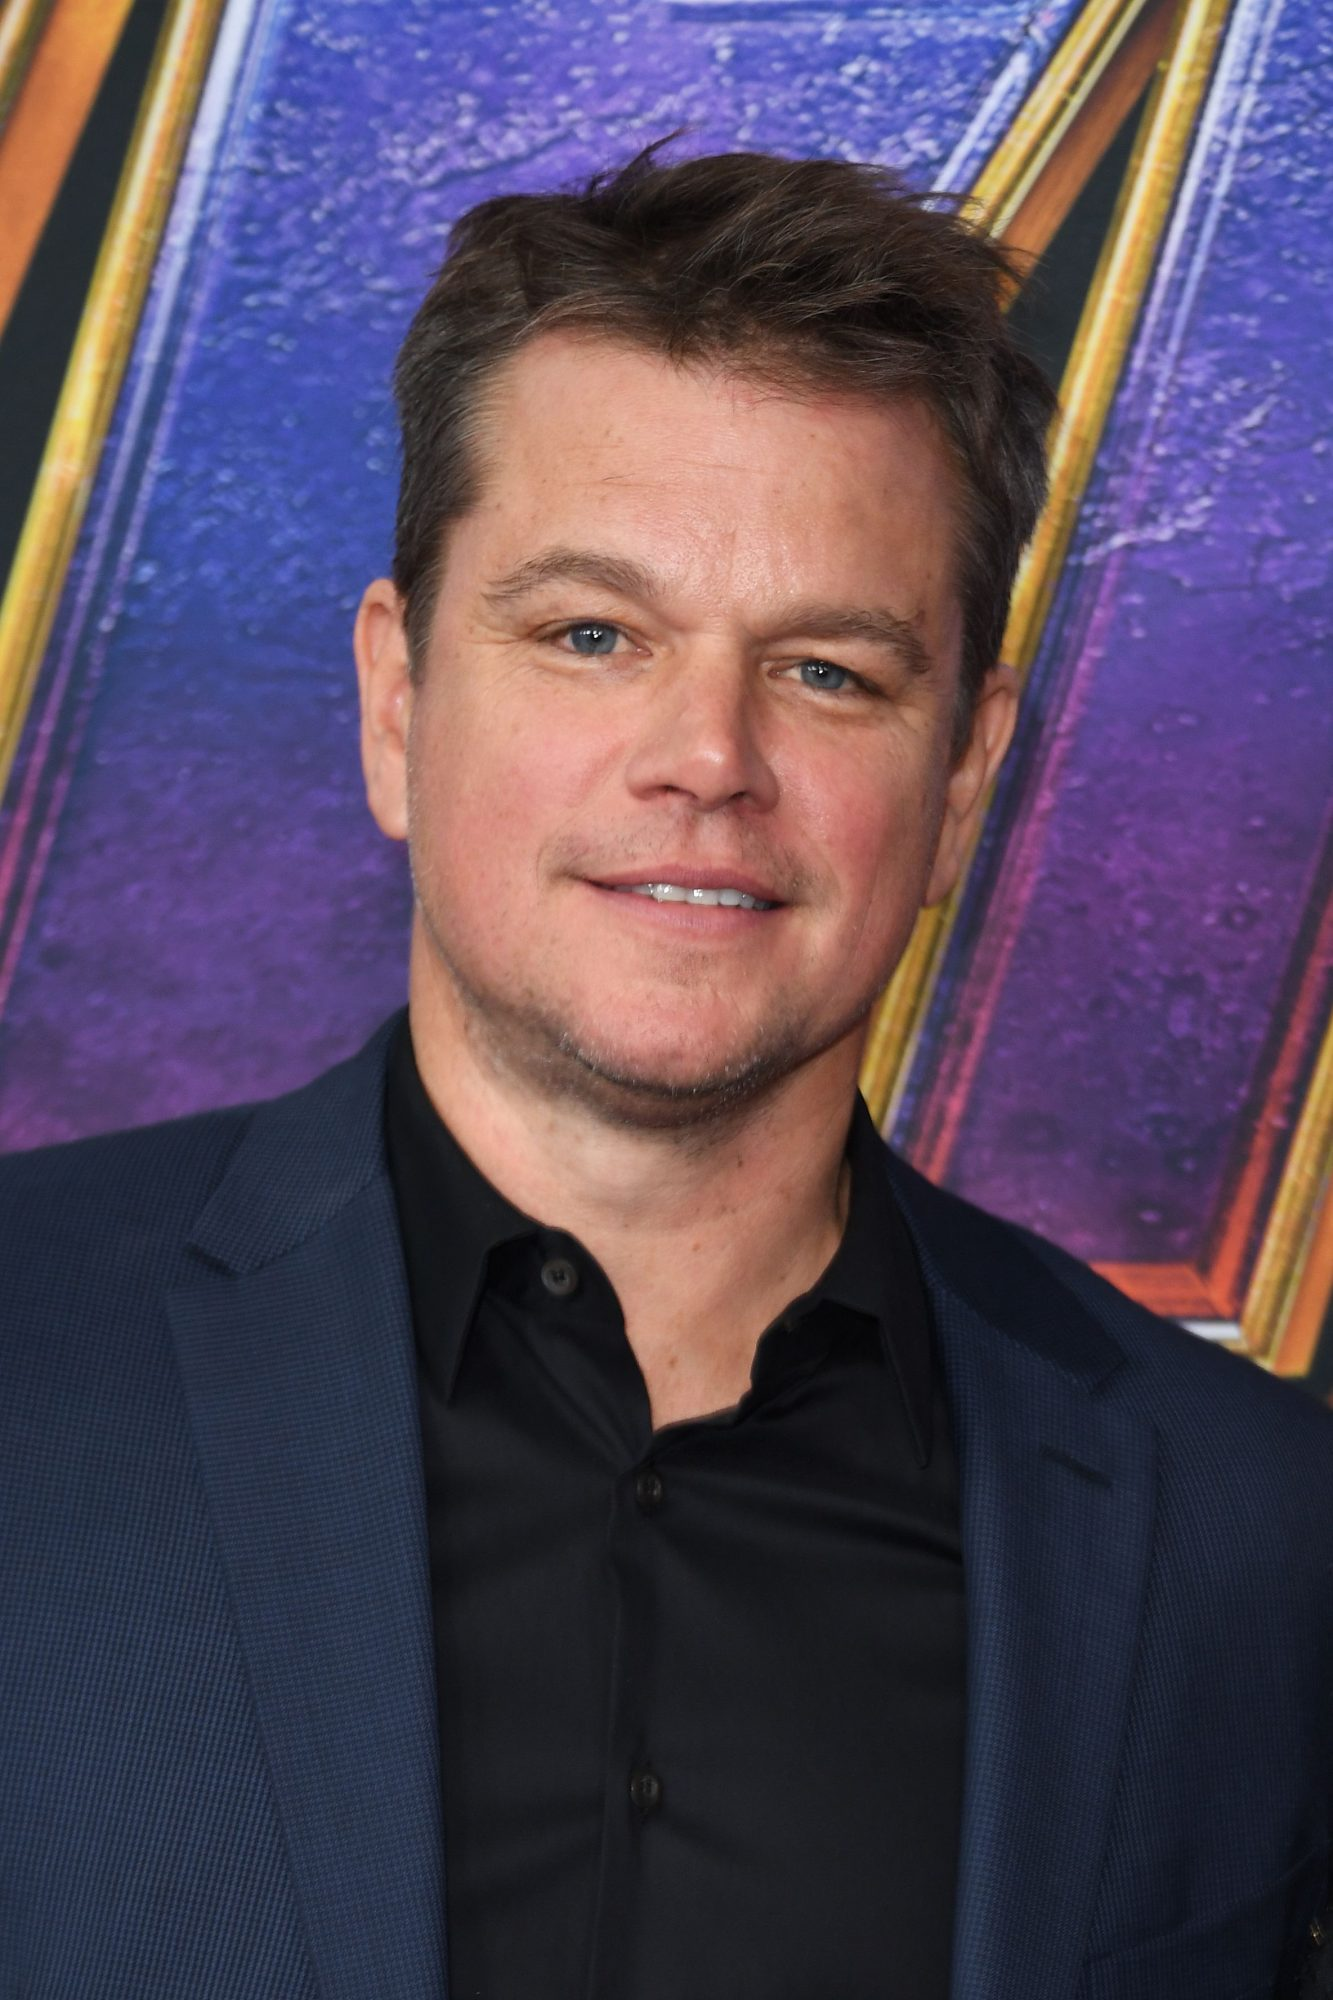 """US actor Matt Damon arrives for the World premiere of Marvel Studios' """"Avengers: Endgame"""" at the Los Angeles Convention Center on April 22, 2019 in Los Angeles. (Photo by VALERIE MACON/AFP/Getty Images)"""